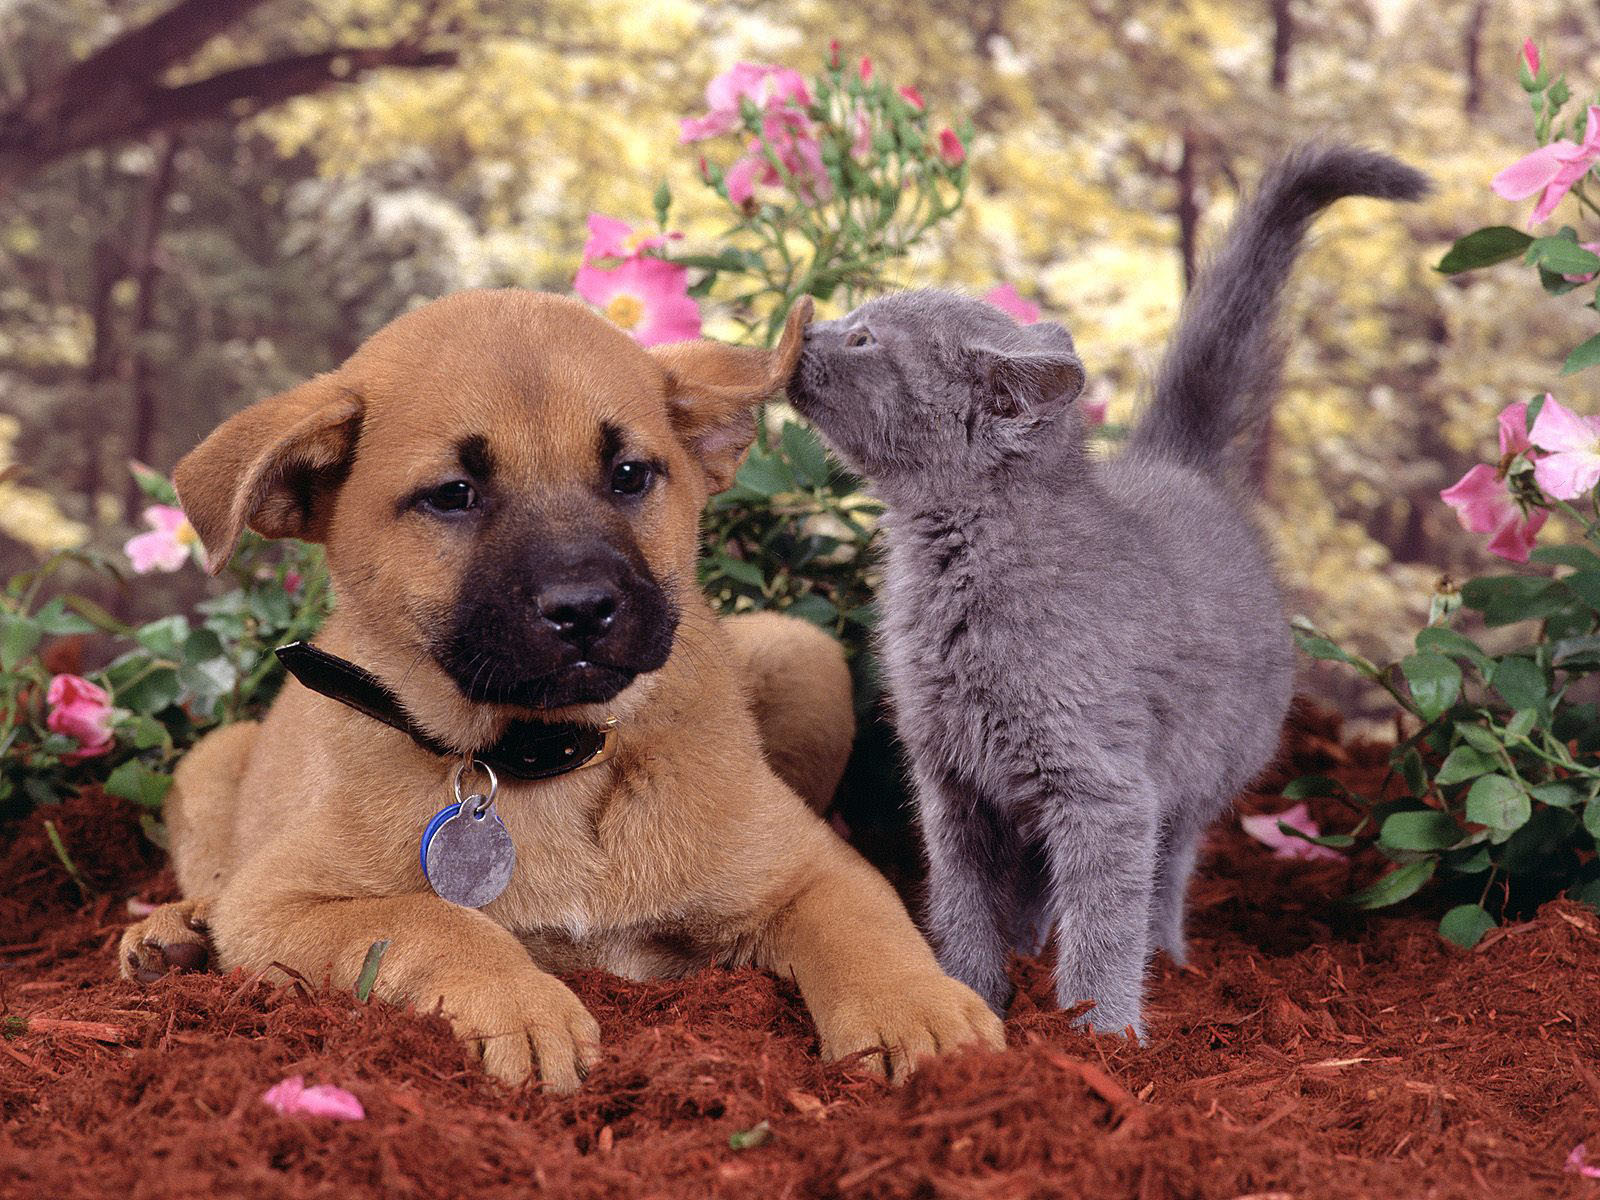 Dogs and Cats   dogs vs cats Wallpaper 13631892 1600x1200